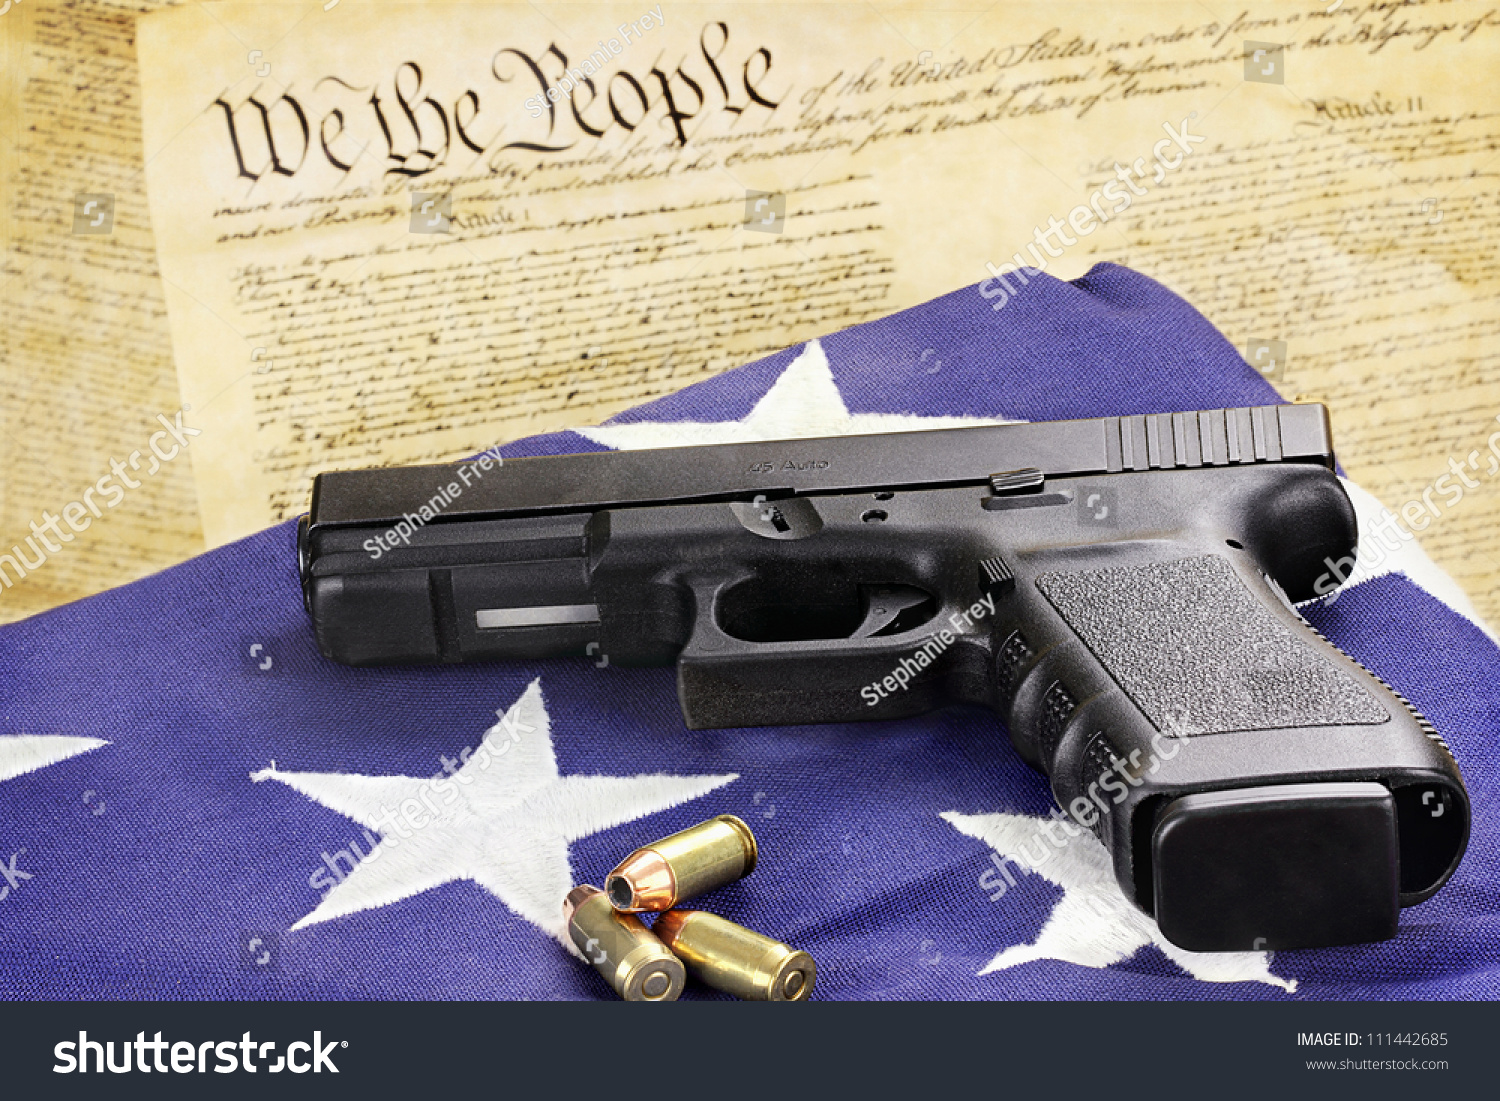 2nd amendment essay contest The nra civil rights defense fund sponsors a scholarly writing contest for  grades k-12 the theme for the essay is what does the second amendment  mean.